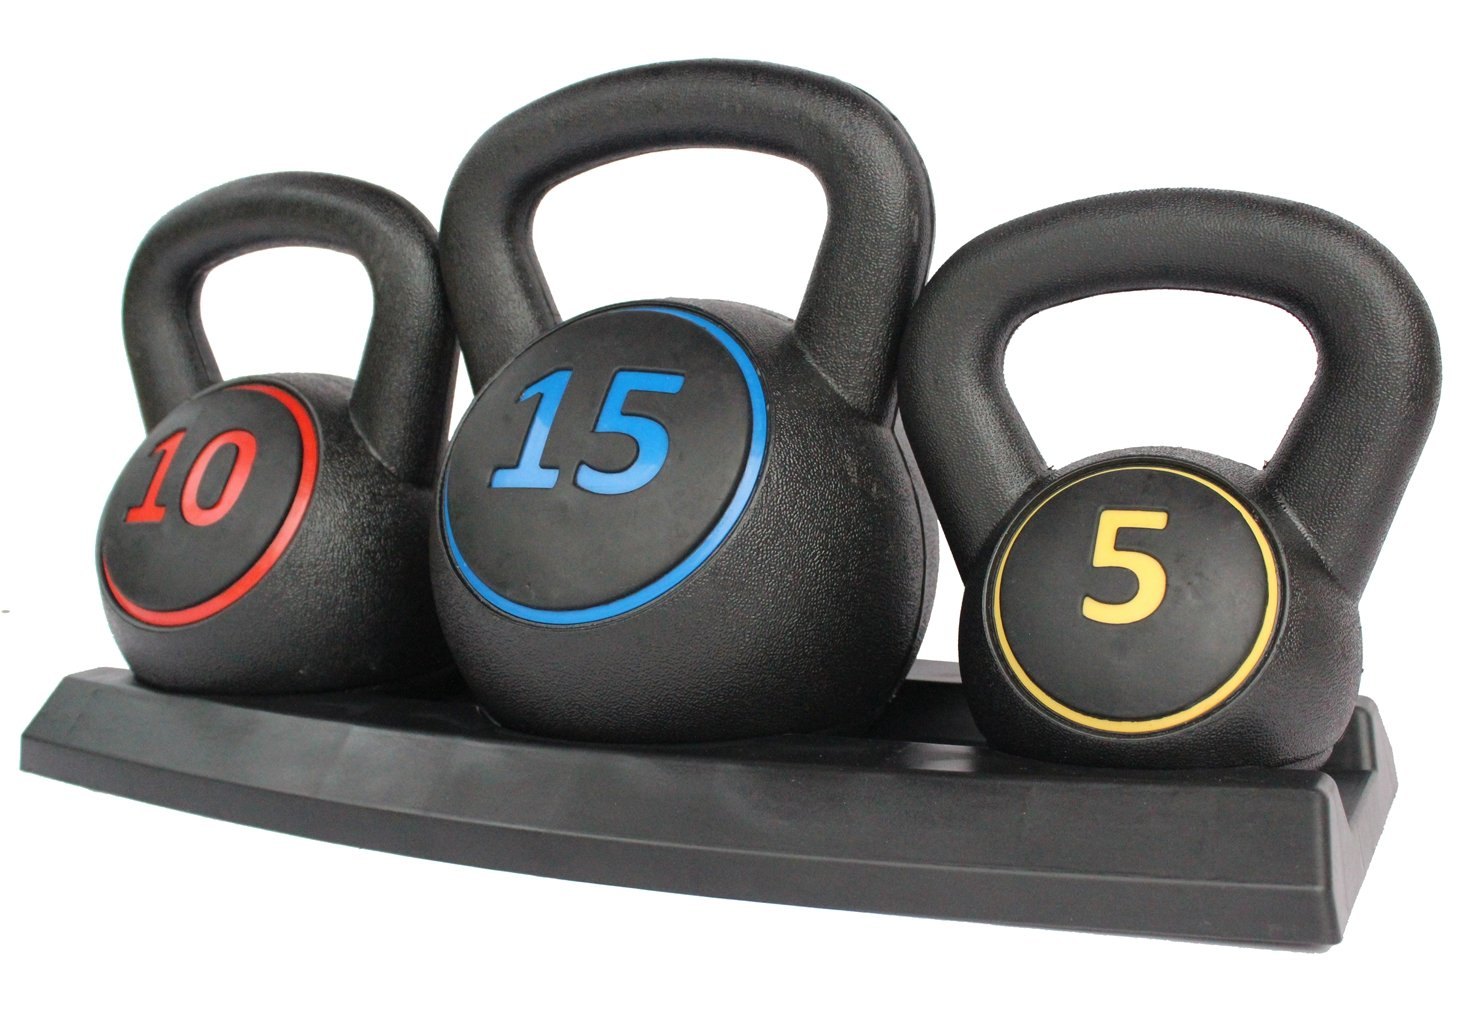 KLB Sport 30 lb Vinyl Coated Kettlebells Set with Rack for Cross Training, MMA Training, Home Exercise, Fitness Workout by KLB Sport